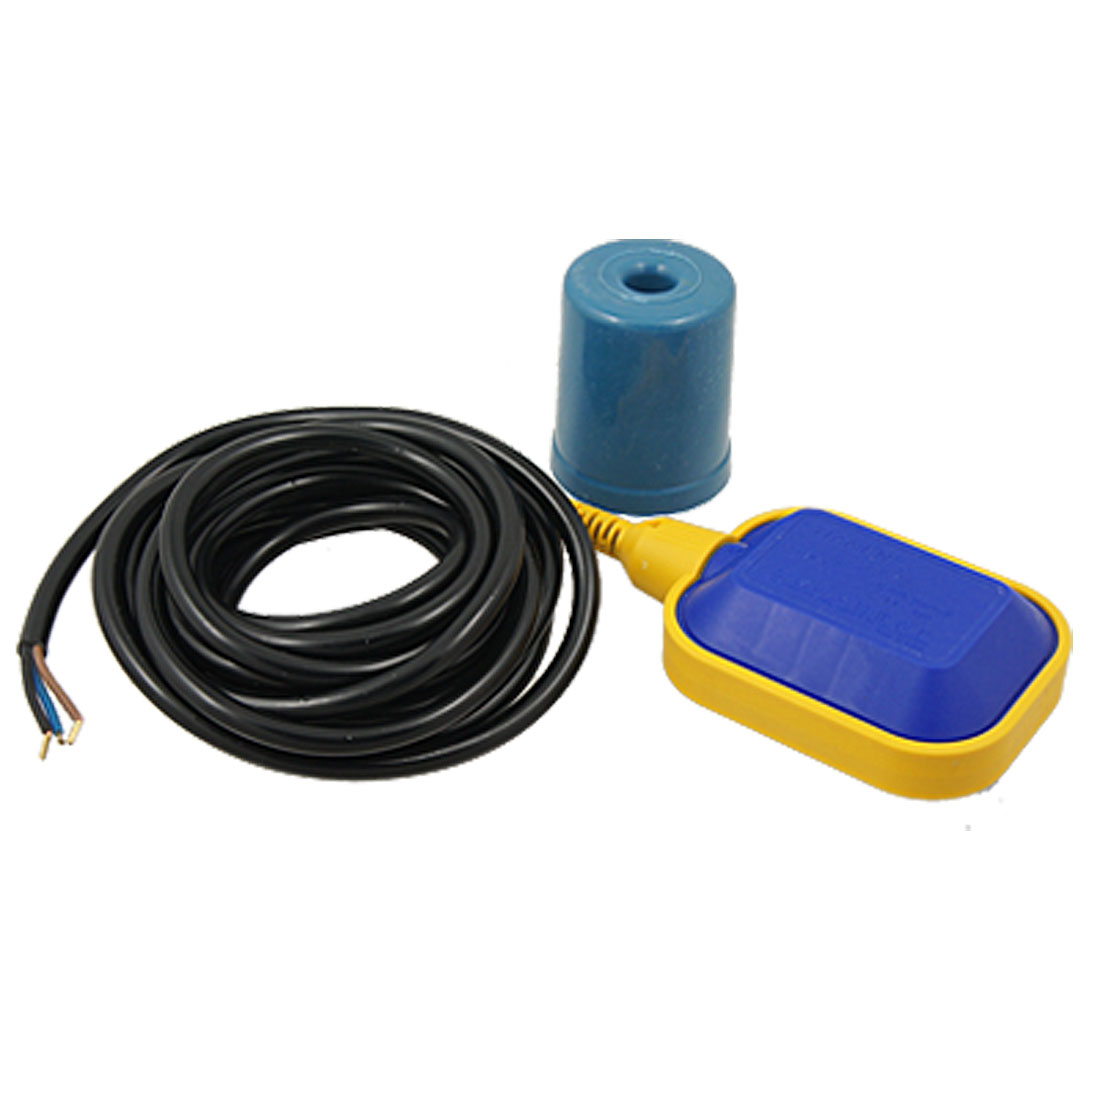 Float-Switch-Liquid-Fluid-Water-Level-Controller-Sensor-3-9M